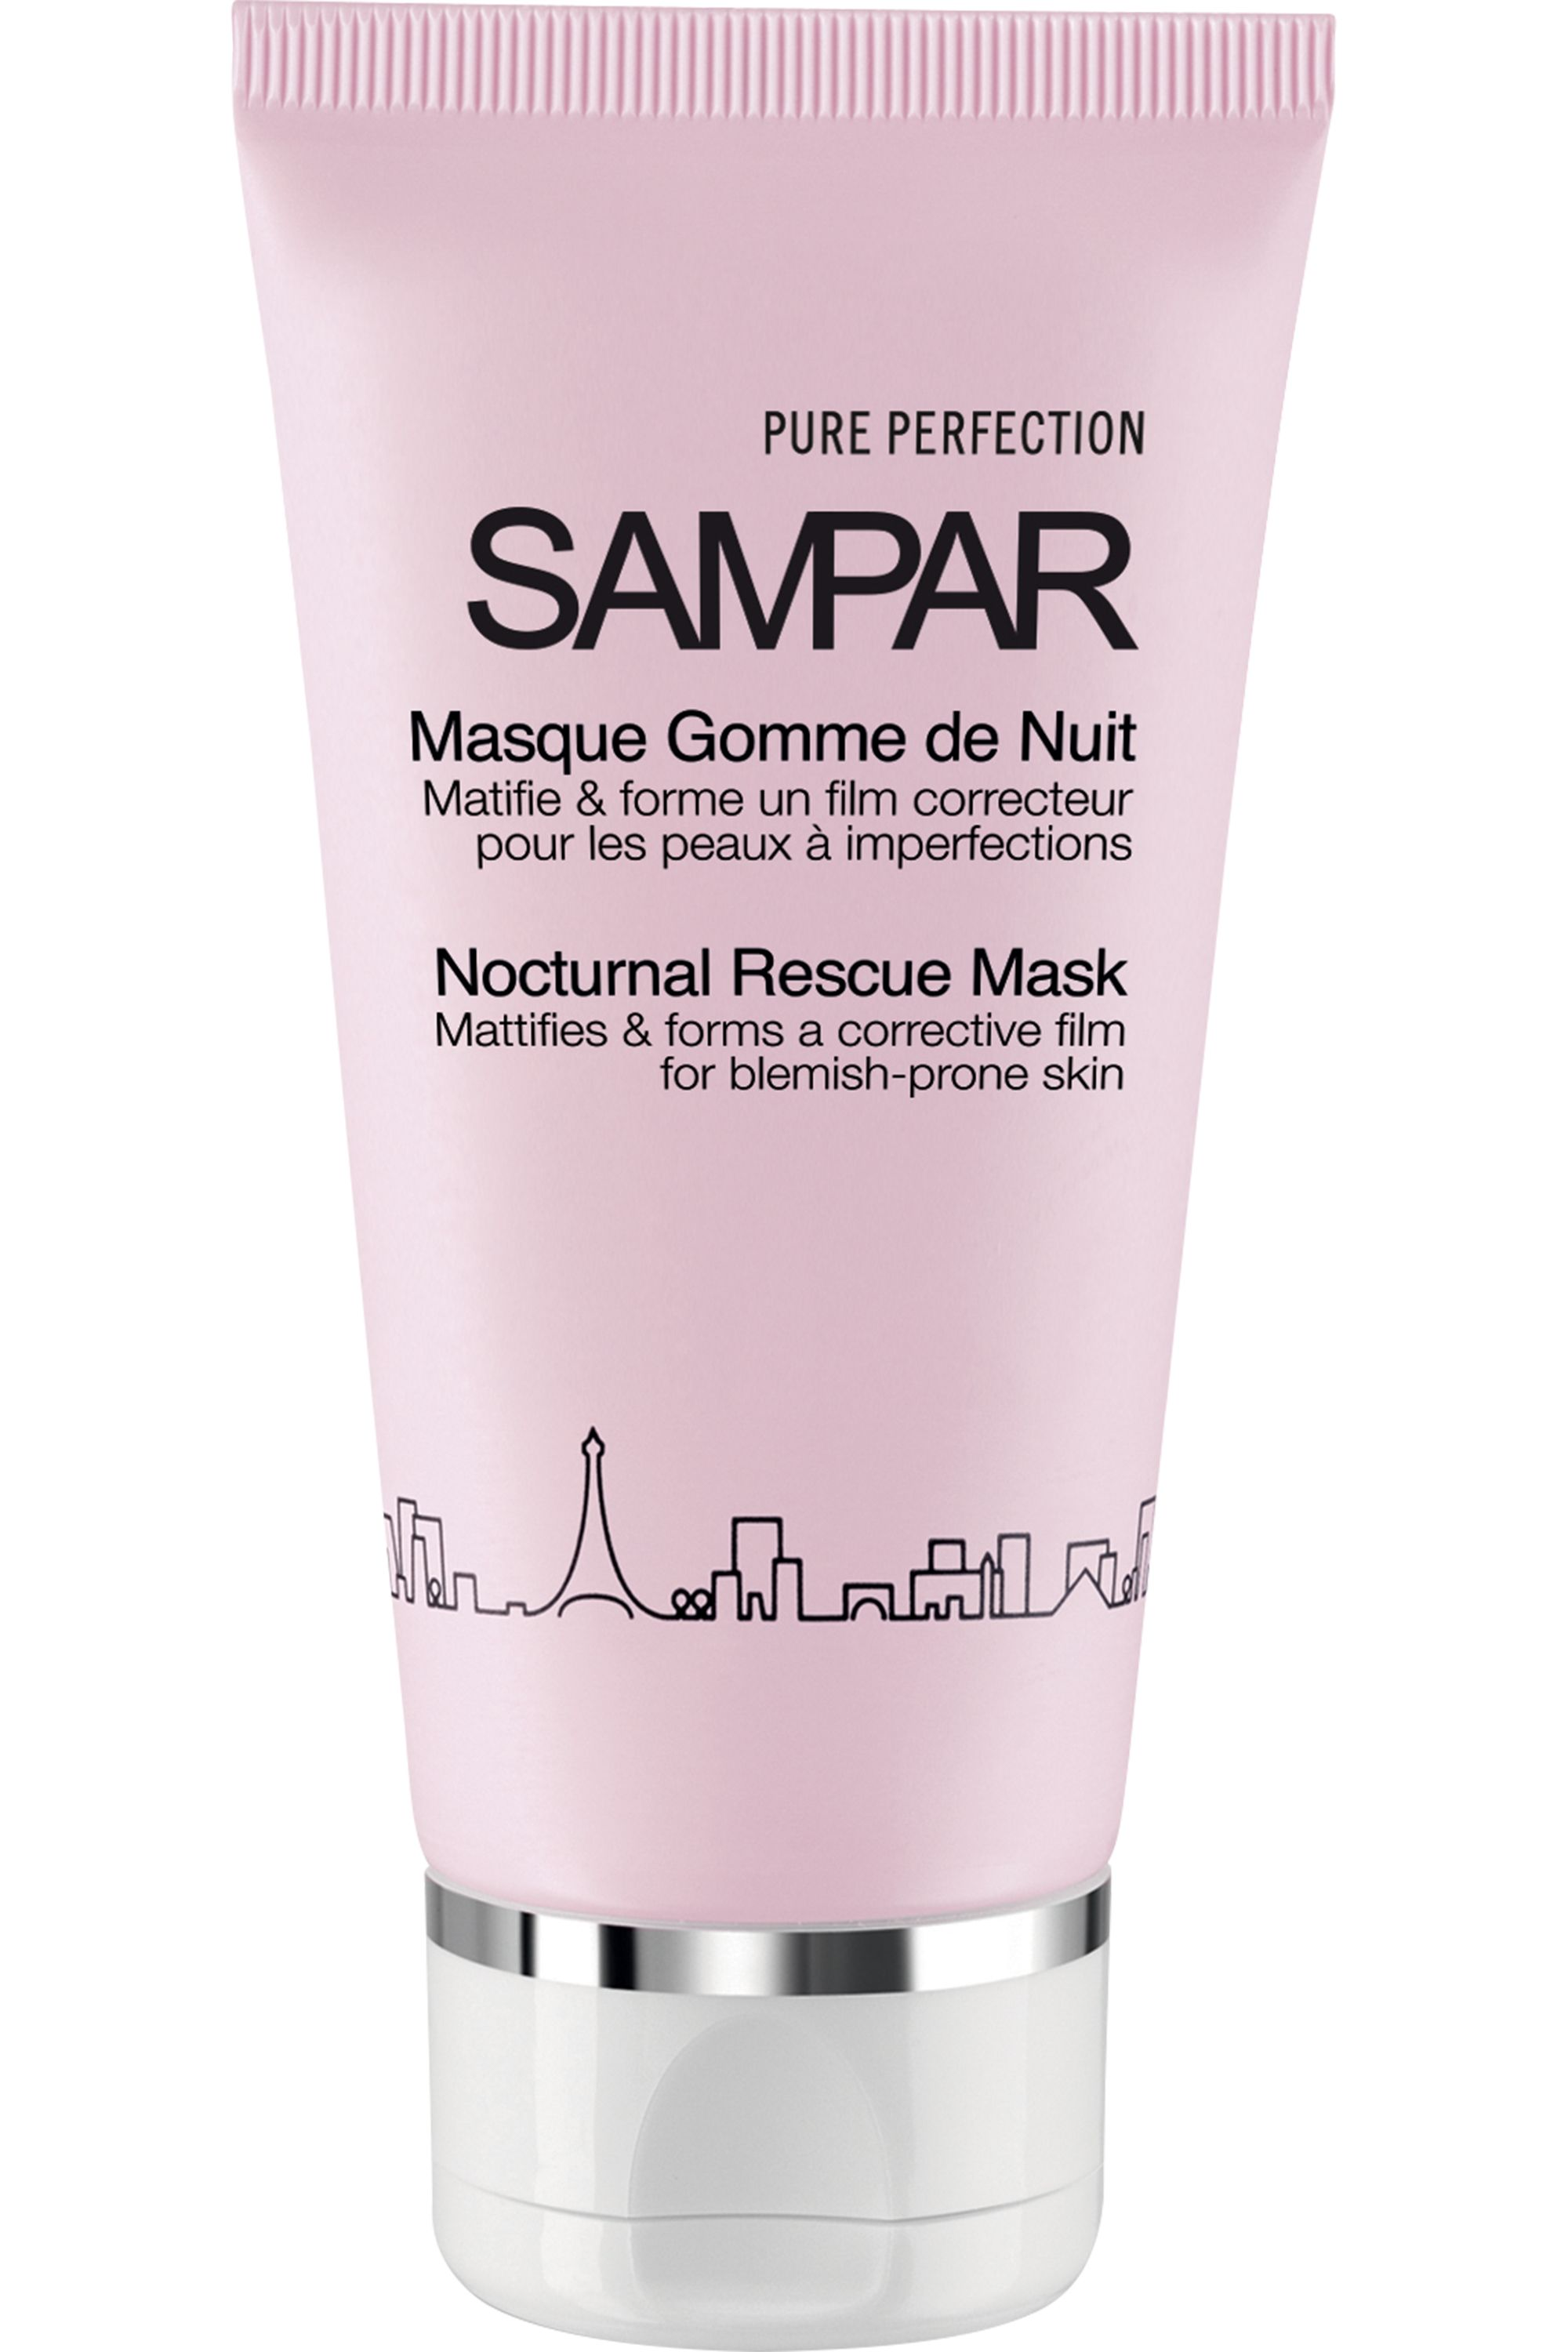 Blissim : Sampar - Masque Gomme de Nuit format exclusif 30 ml - Masque Gomme de Nuit format exclusif 30 ml